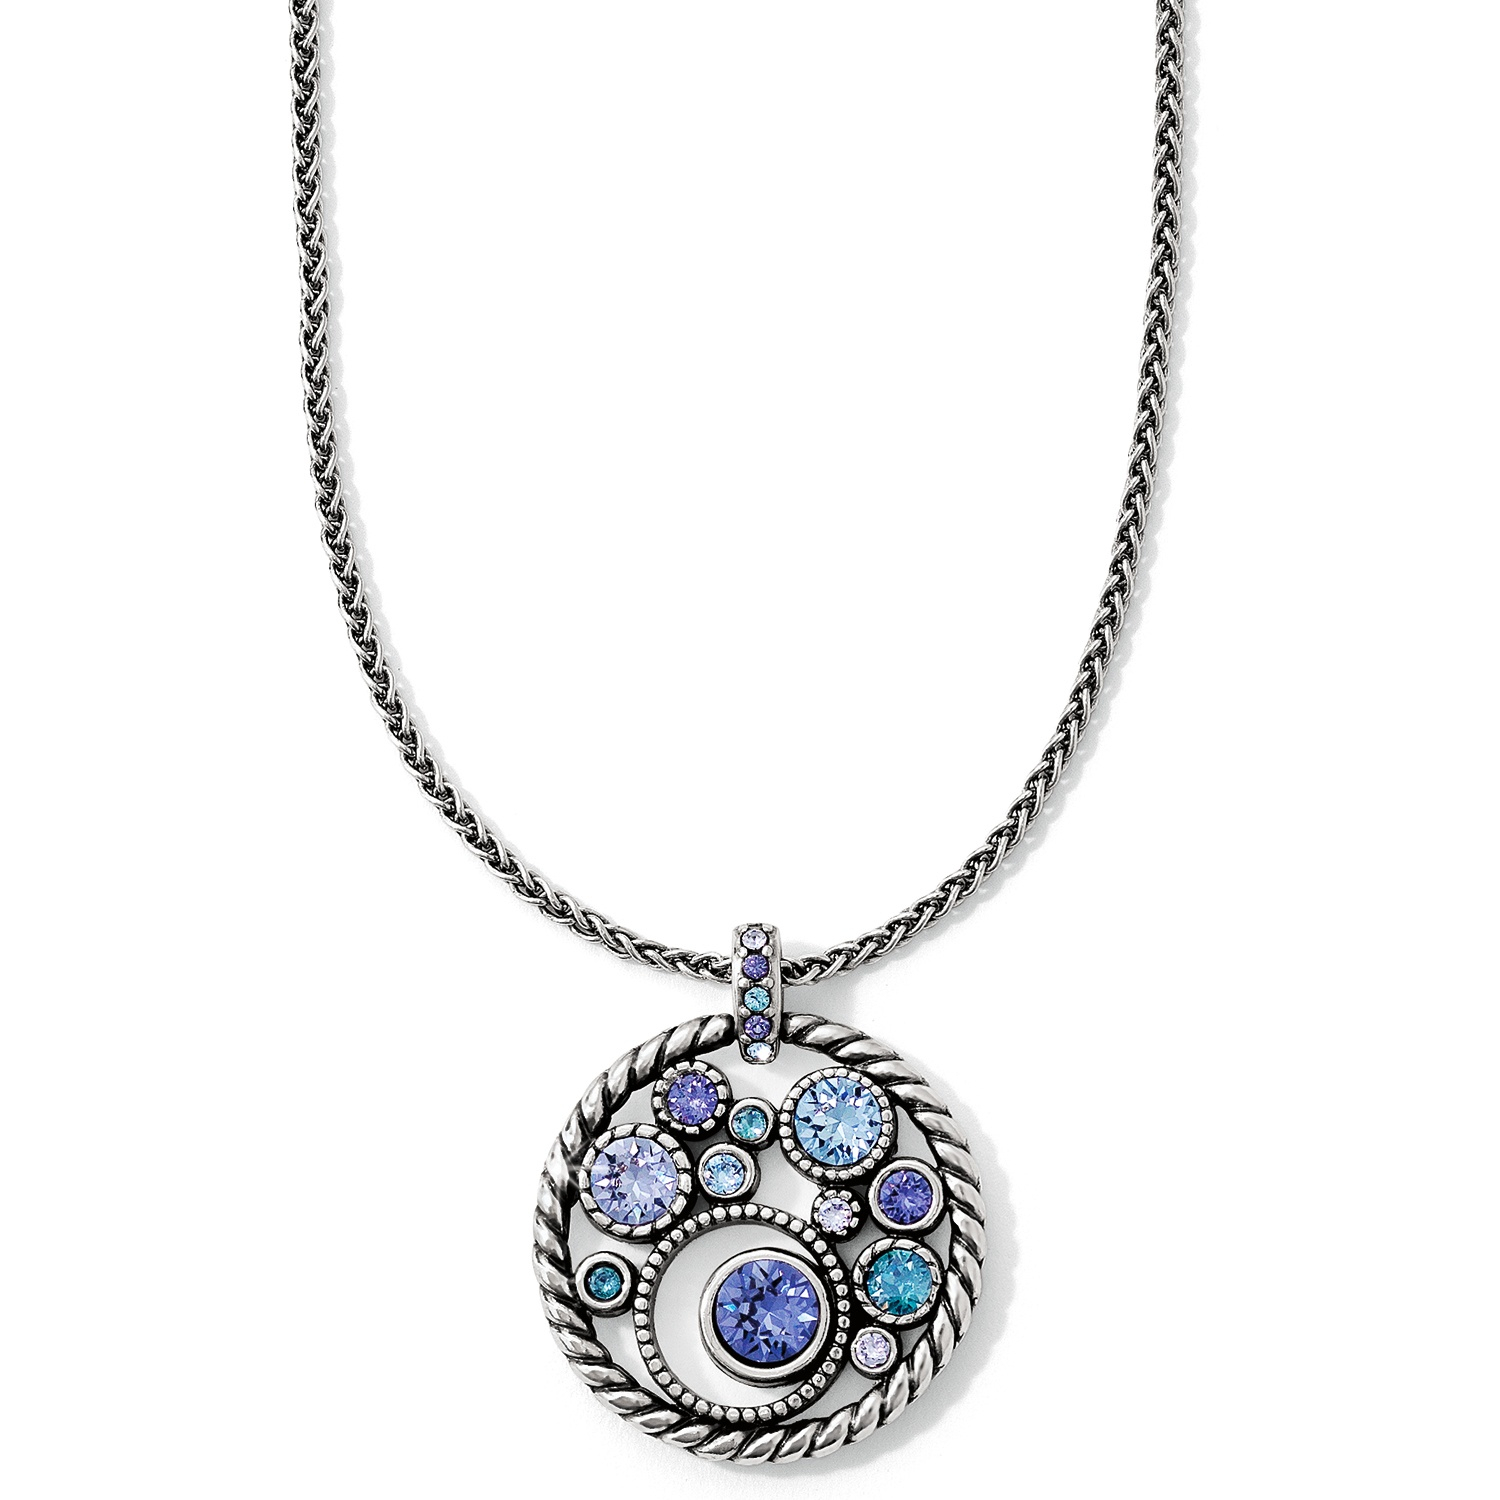 Halo Necklace Intended For Most Popular Square Sparkle Halo Pendant Necklaces (View 14 of 25)